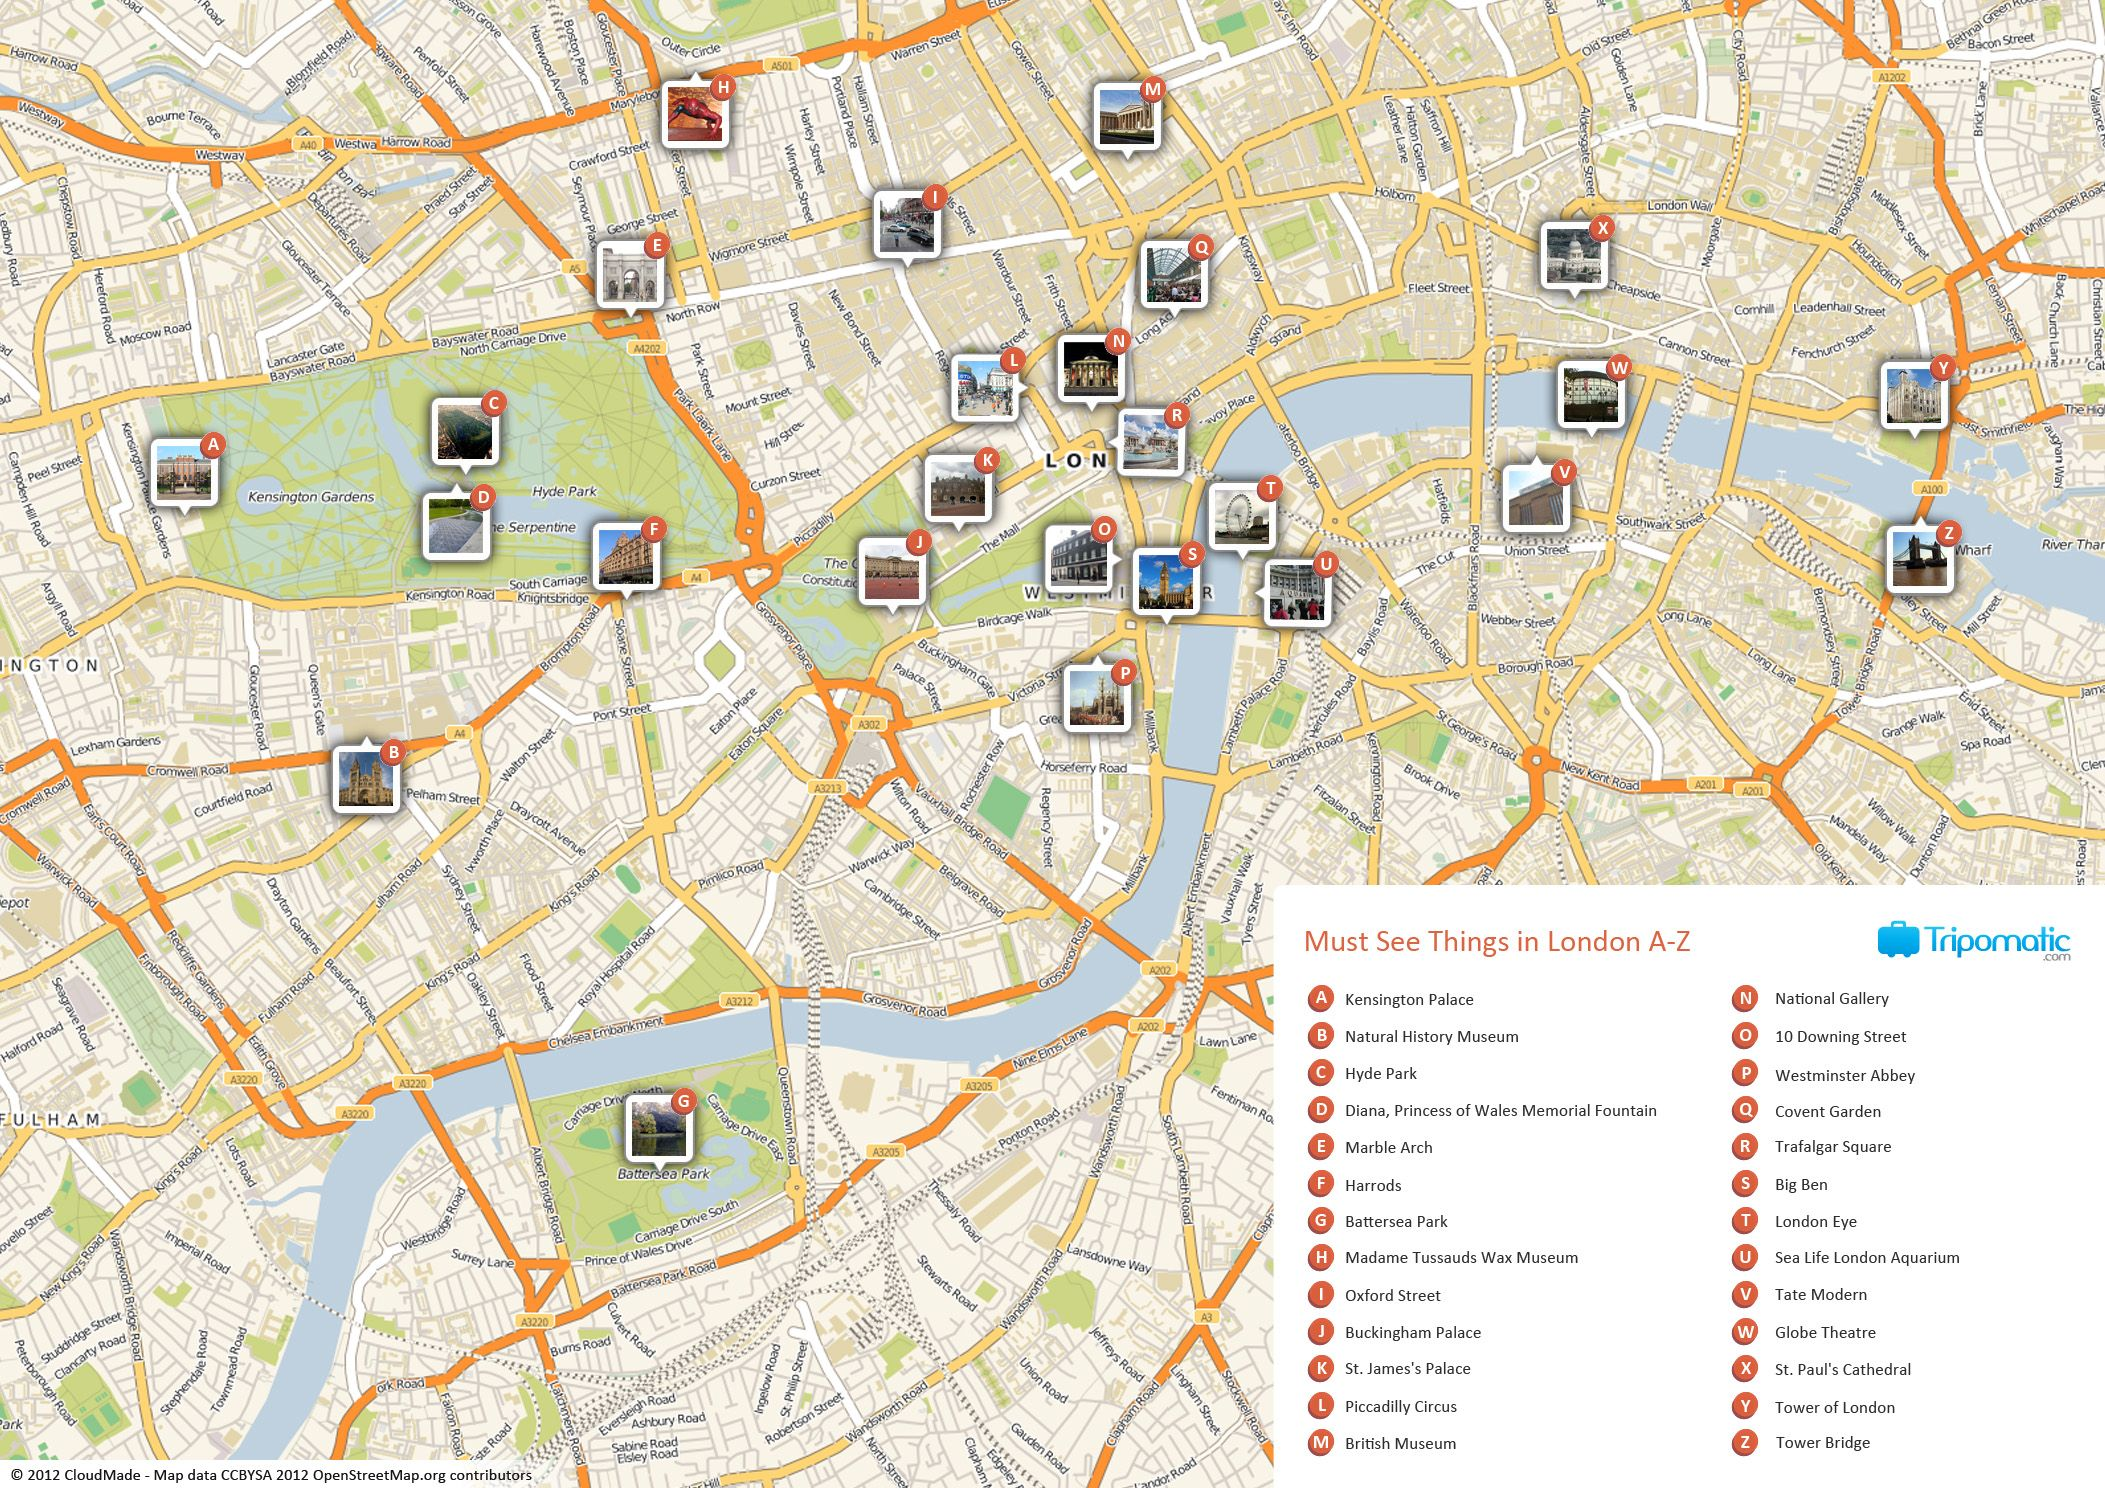 London Map Printable.Map Of London With Must See Sights And Attractions Free Printable